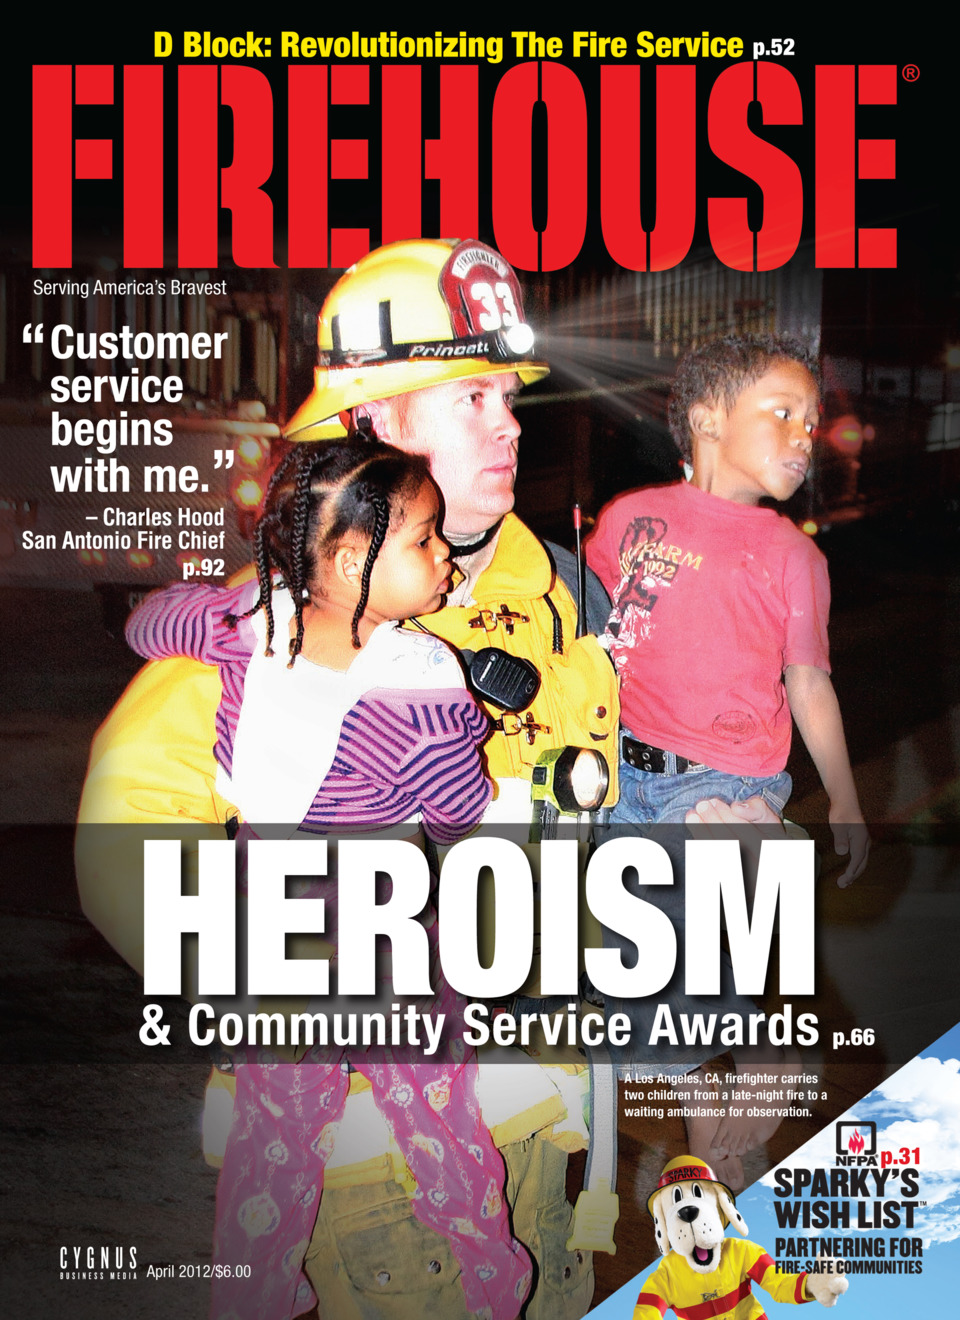 a57f6e0f952f Firehouse Magazine Covers Through the Years